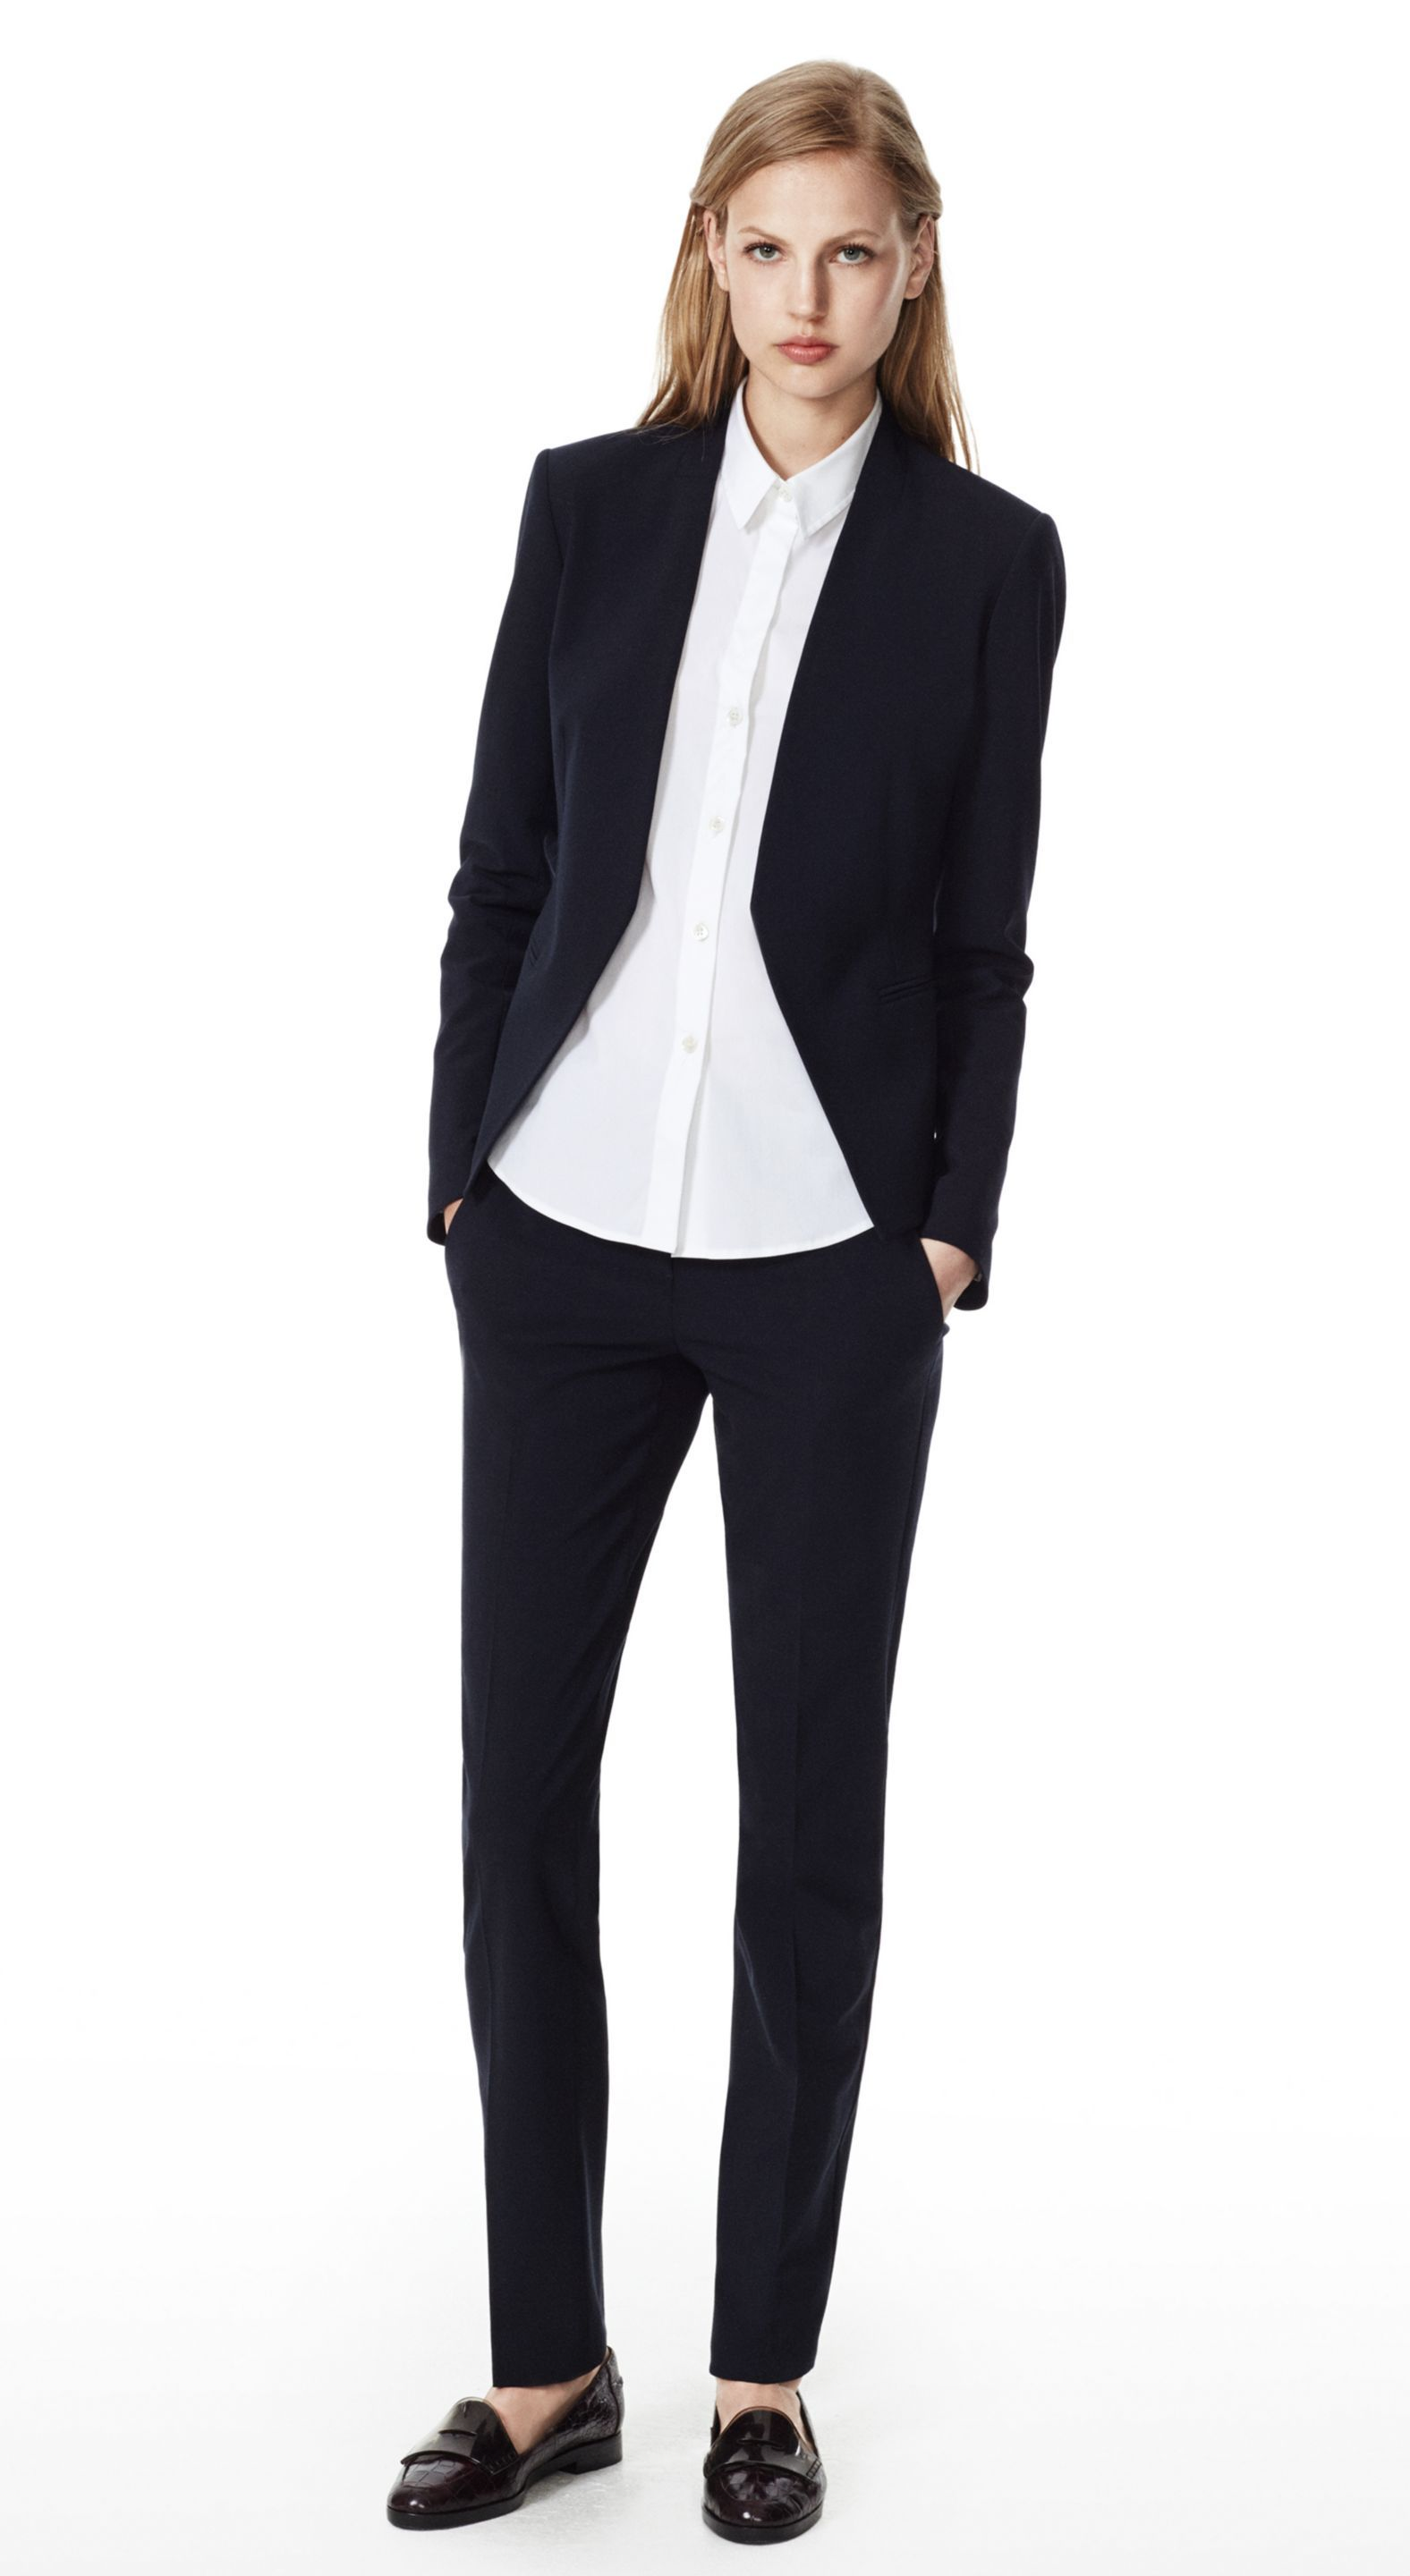 THEORY Uniform Lanai Jacket & Louise Pant in Urban Stretch Wool ...